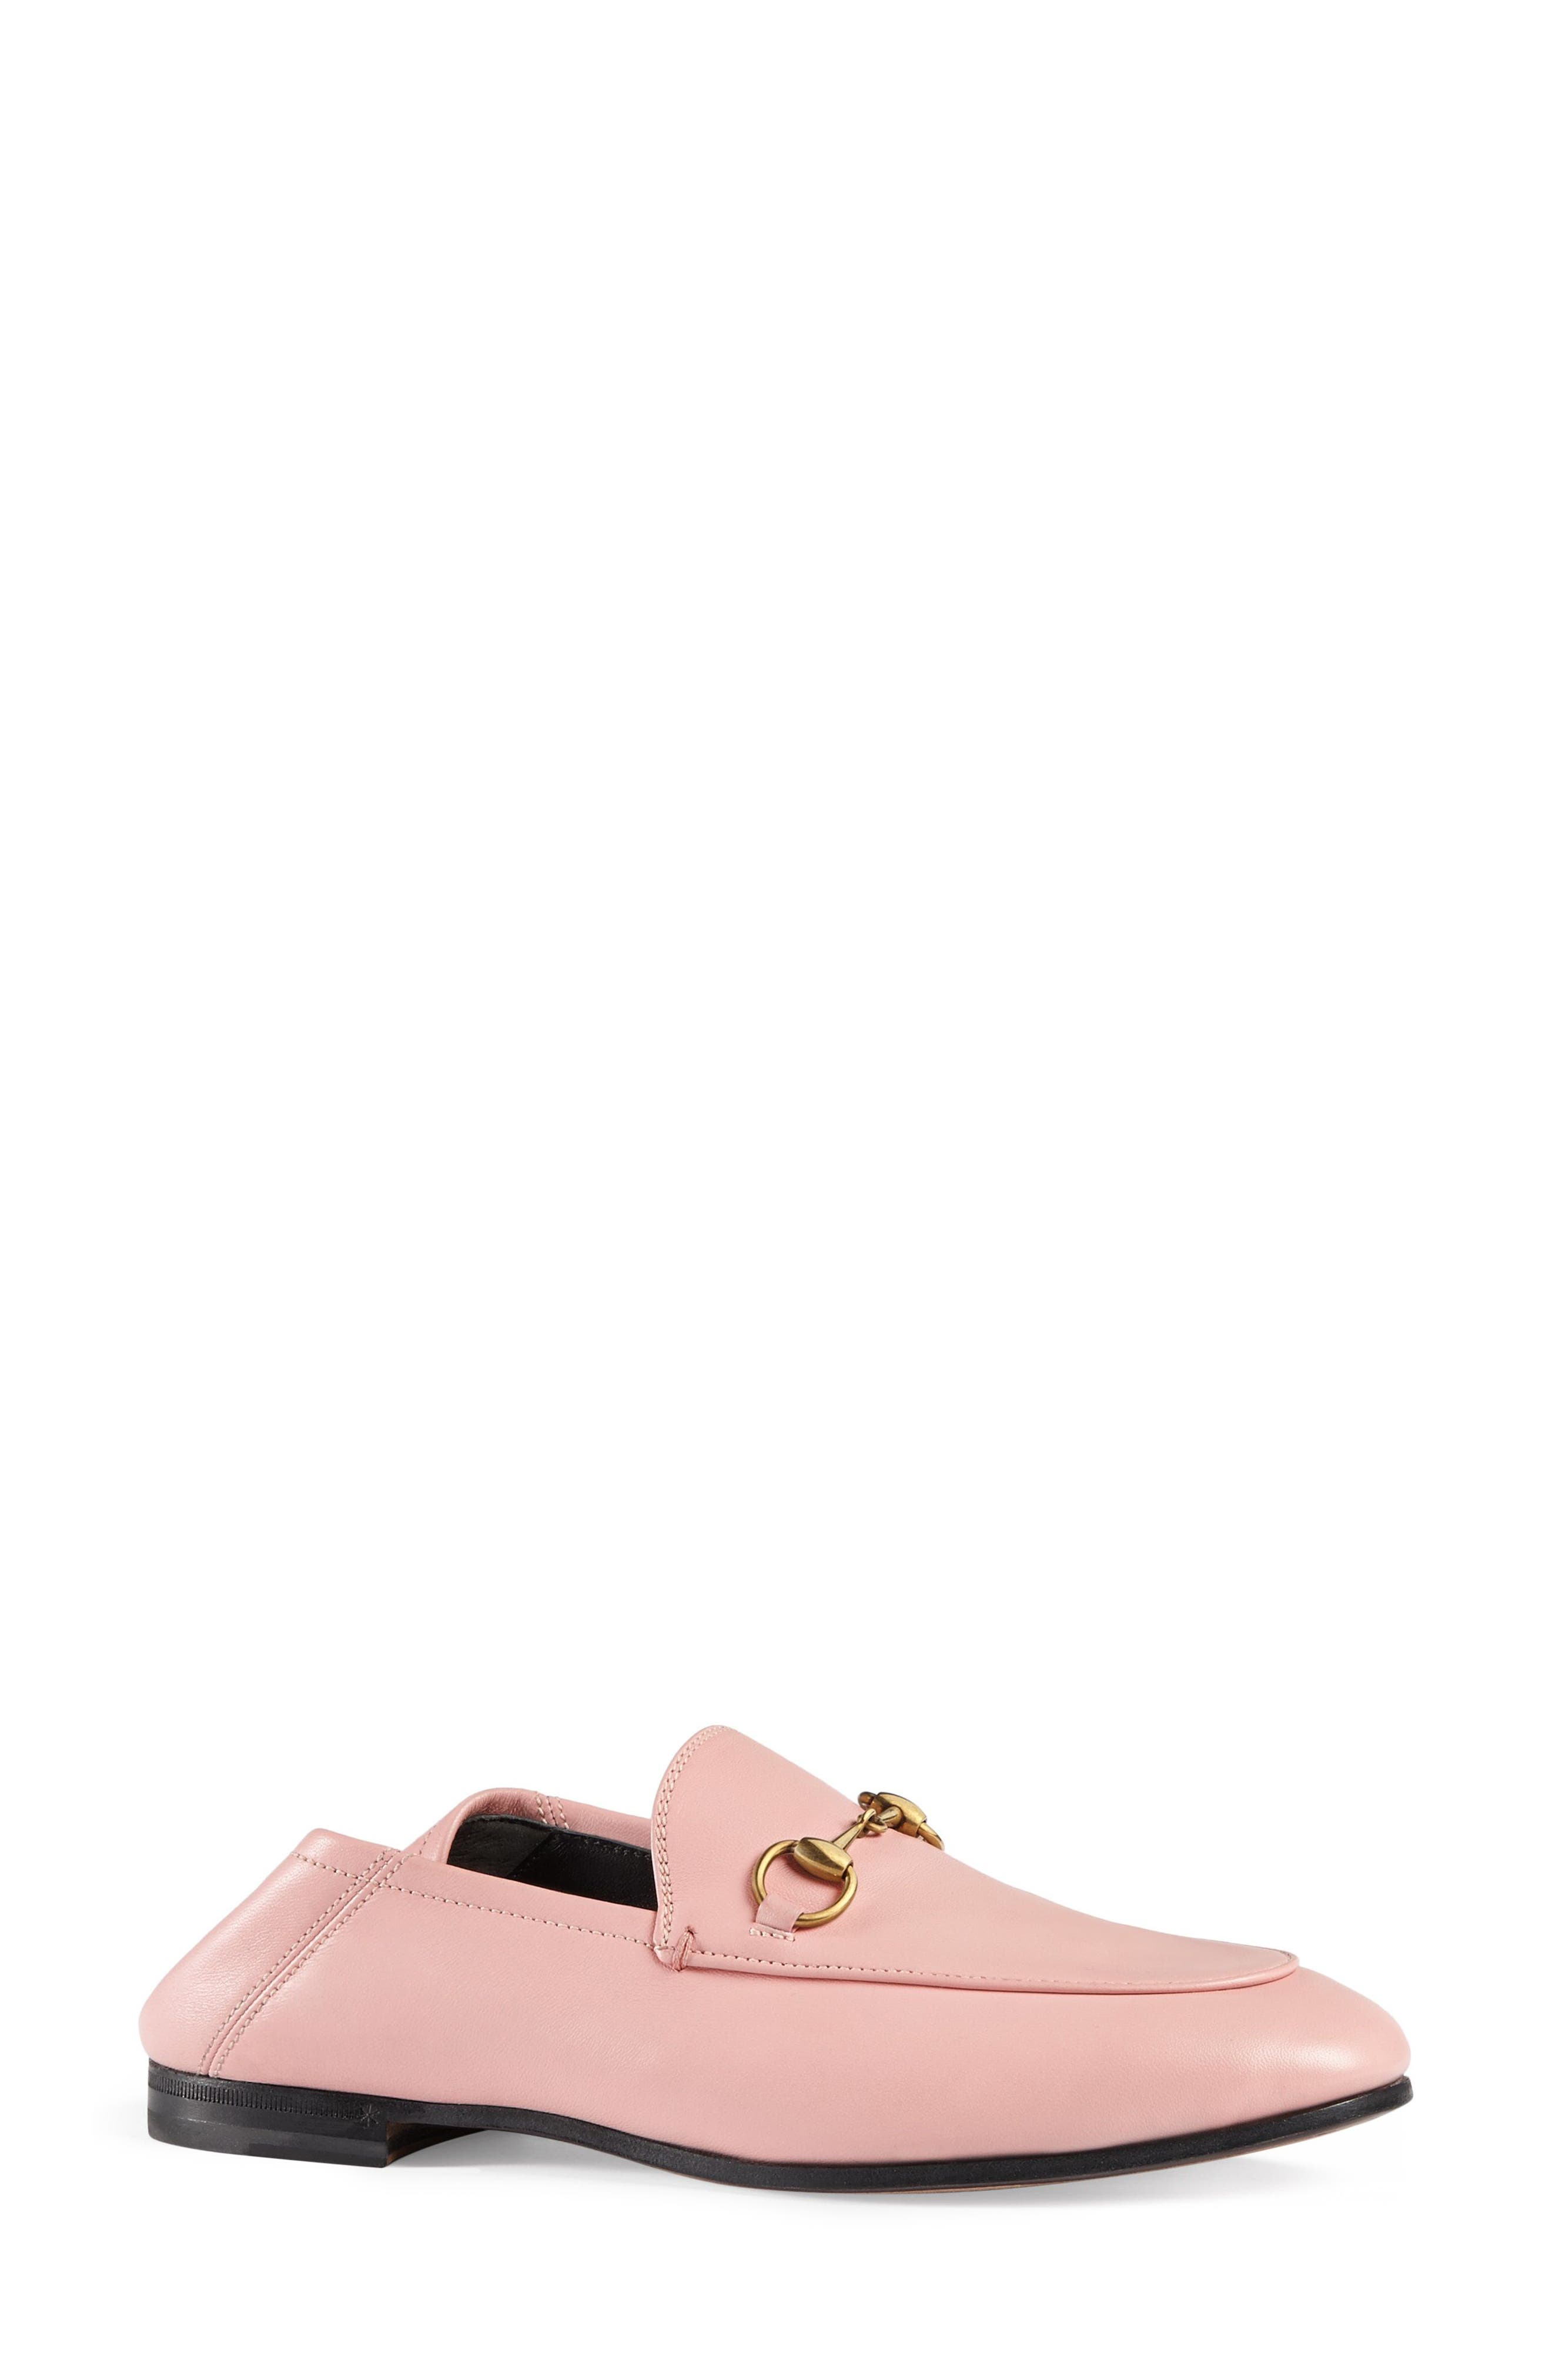 Brixton Convertible Loafer,                         Main,                         color, Light Pink Leather